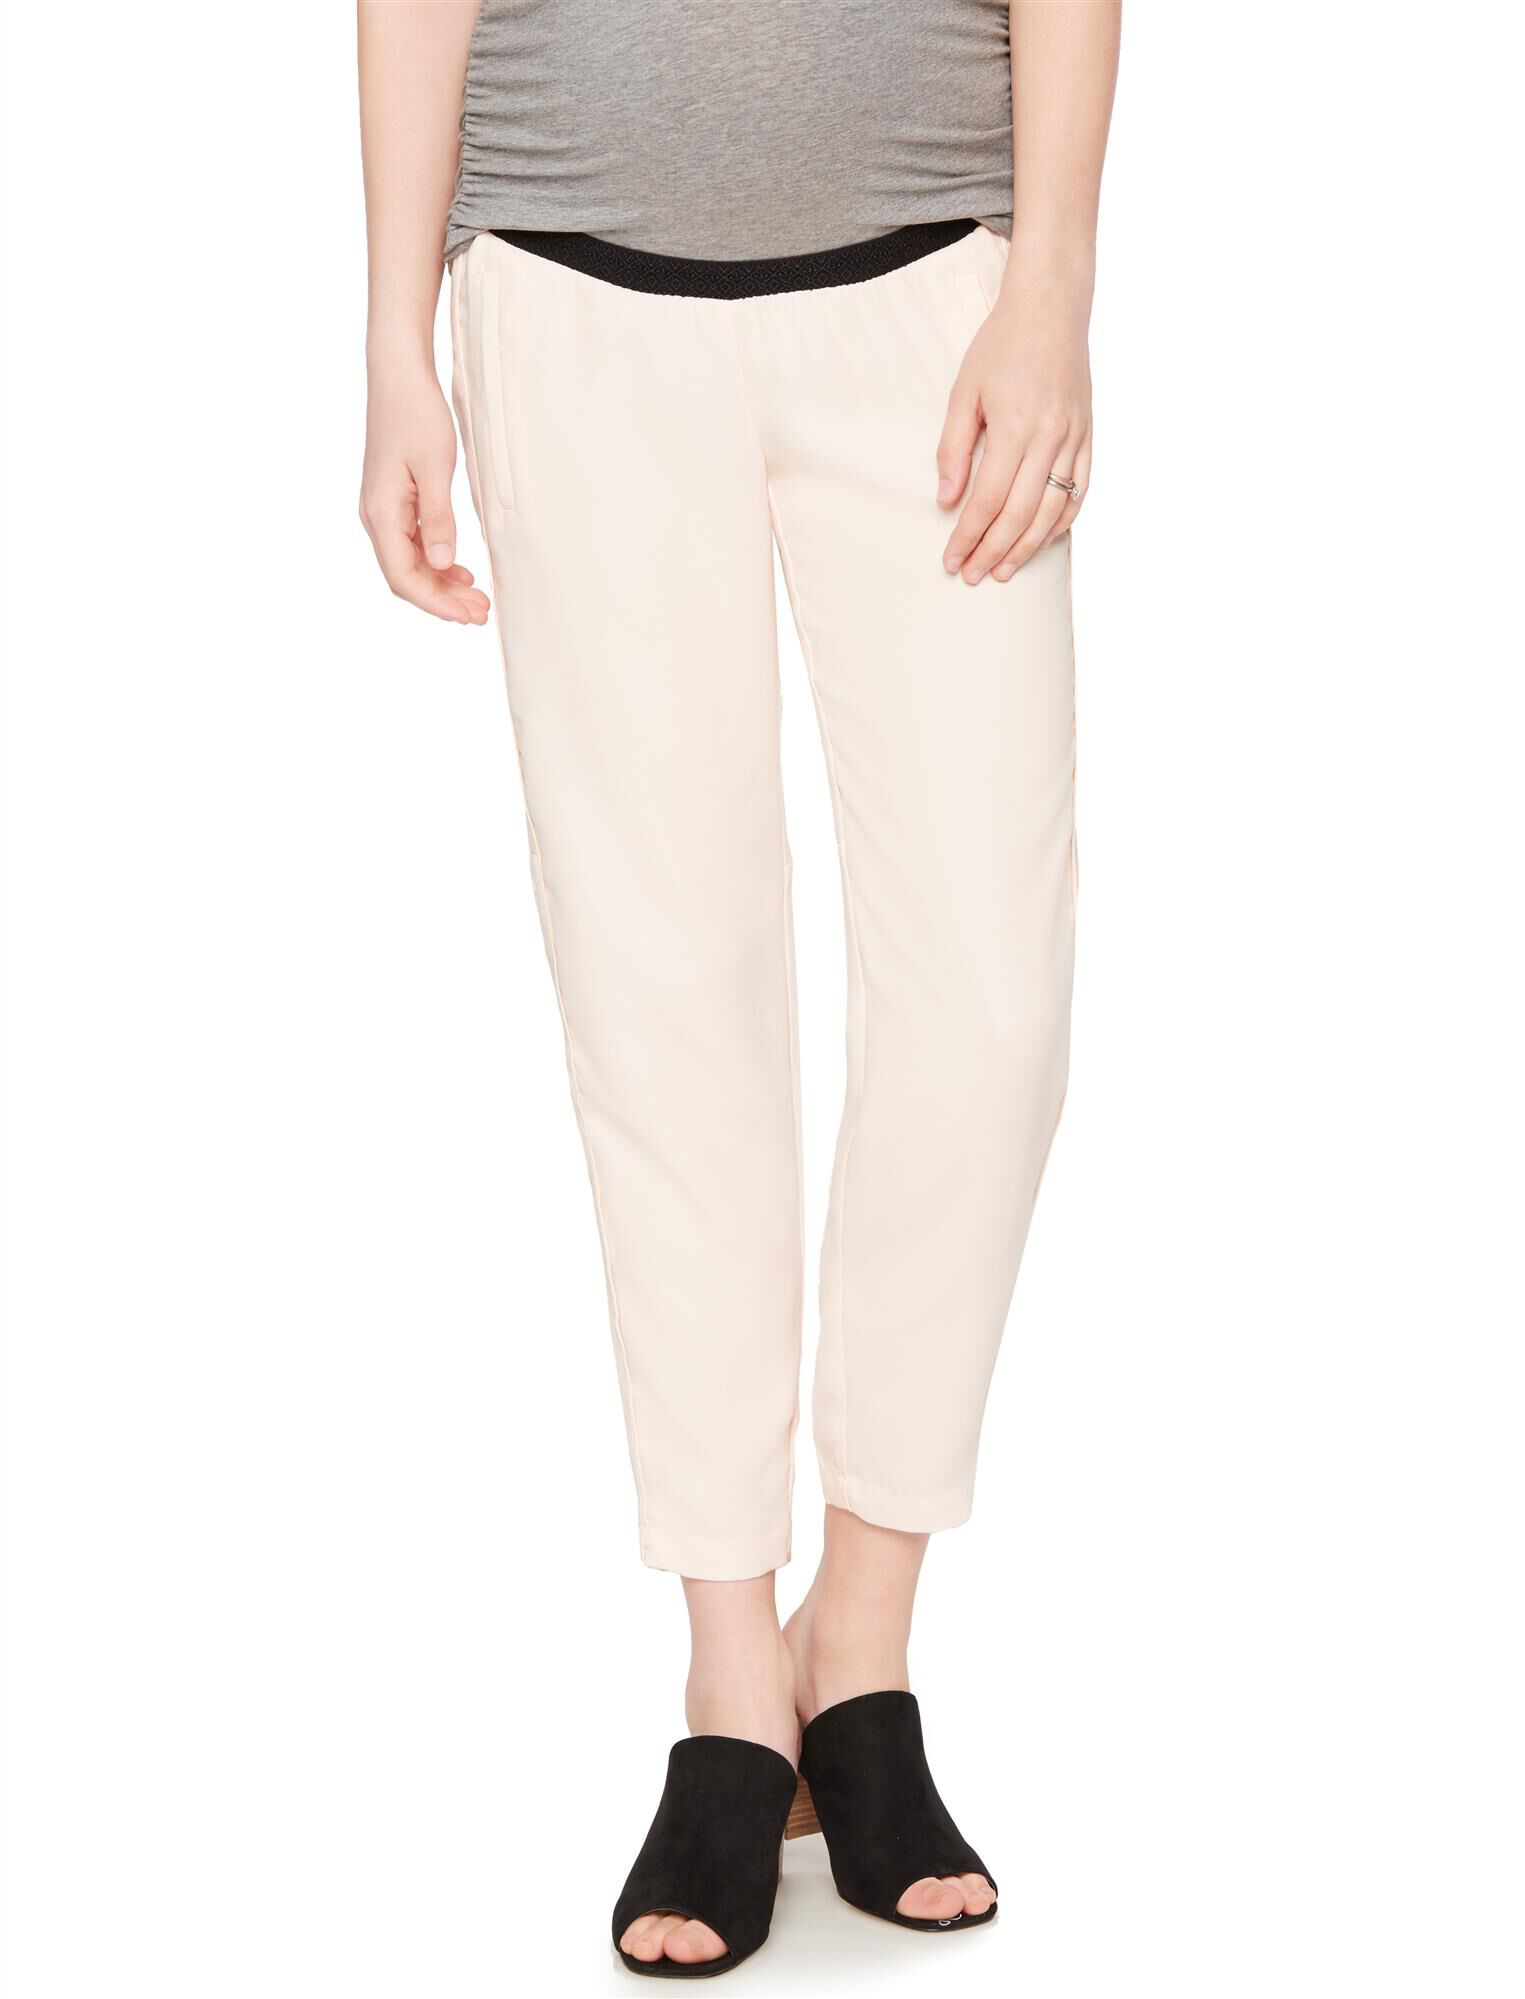 Under Belly Crepe Skinny Leg Maternity Pants